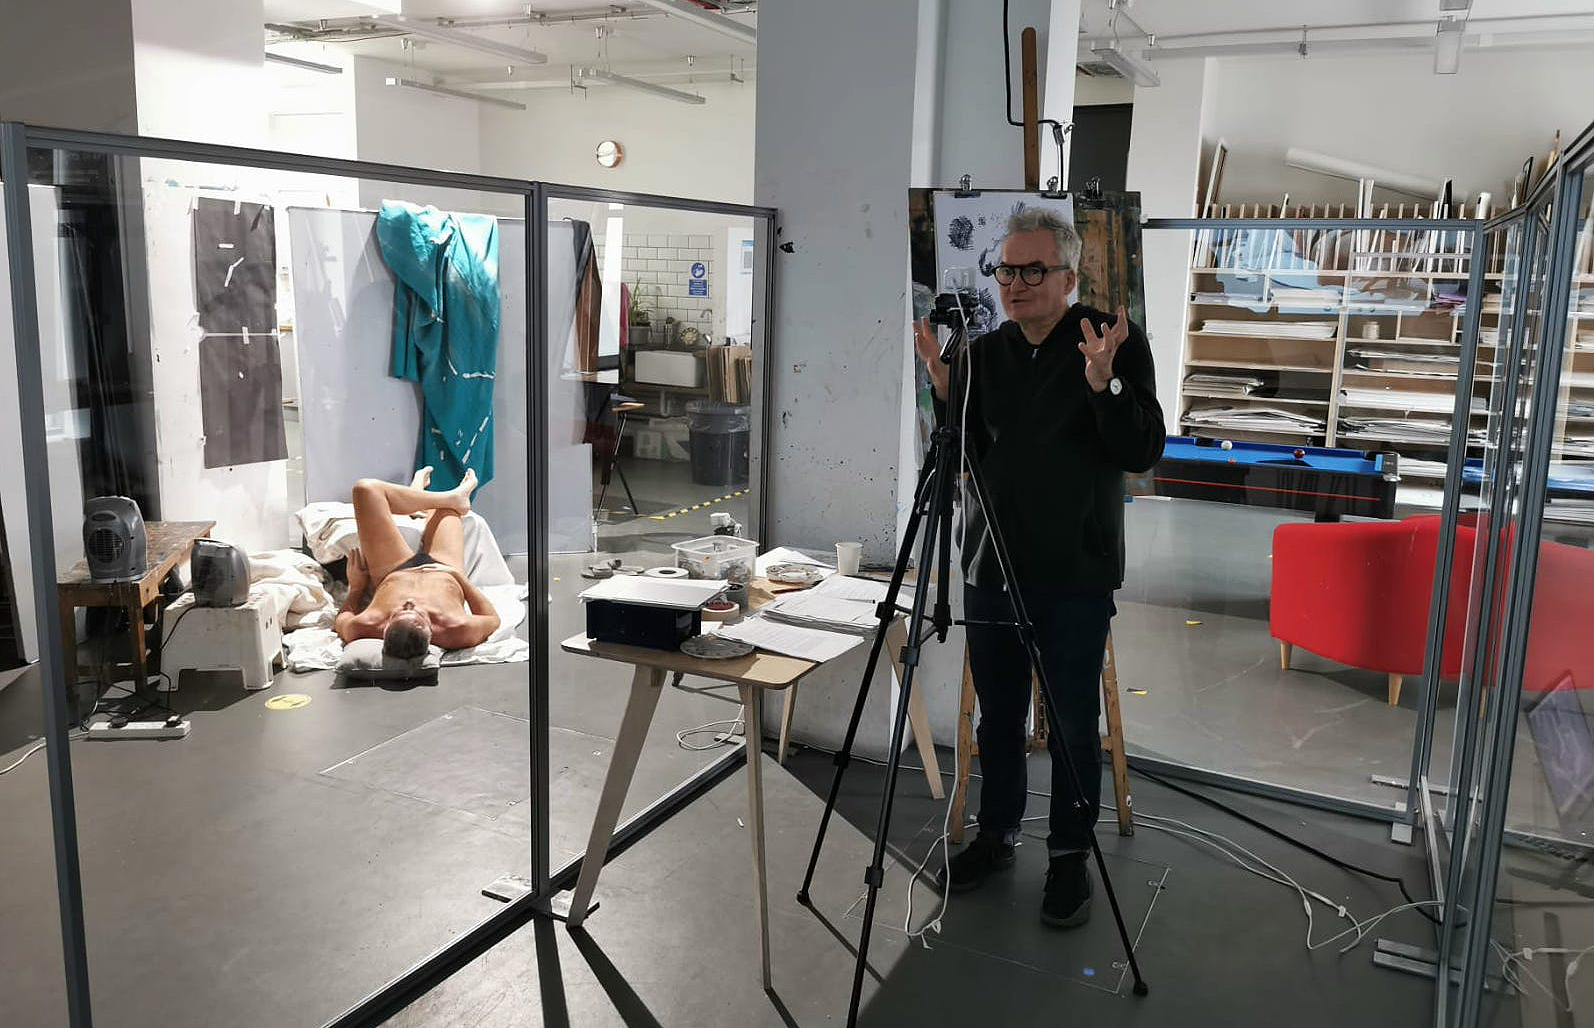 An online life drawing session with tutor Mick Kirkbride